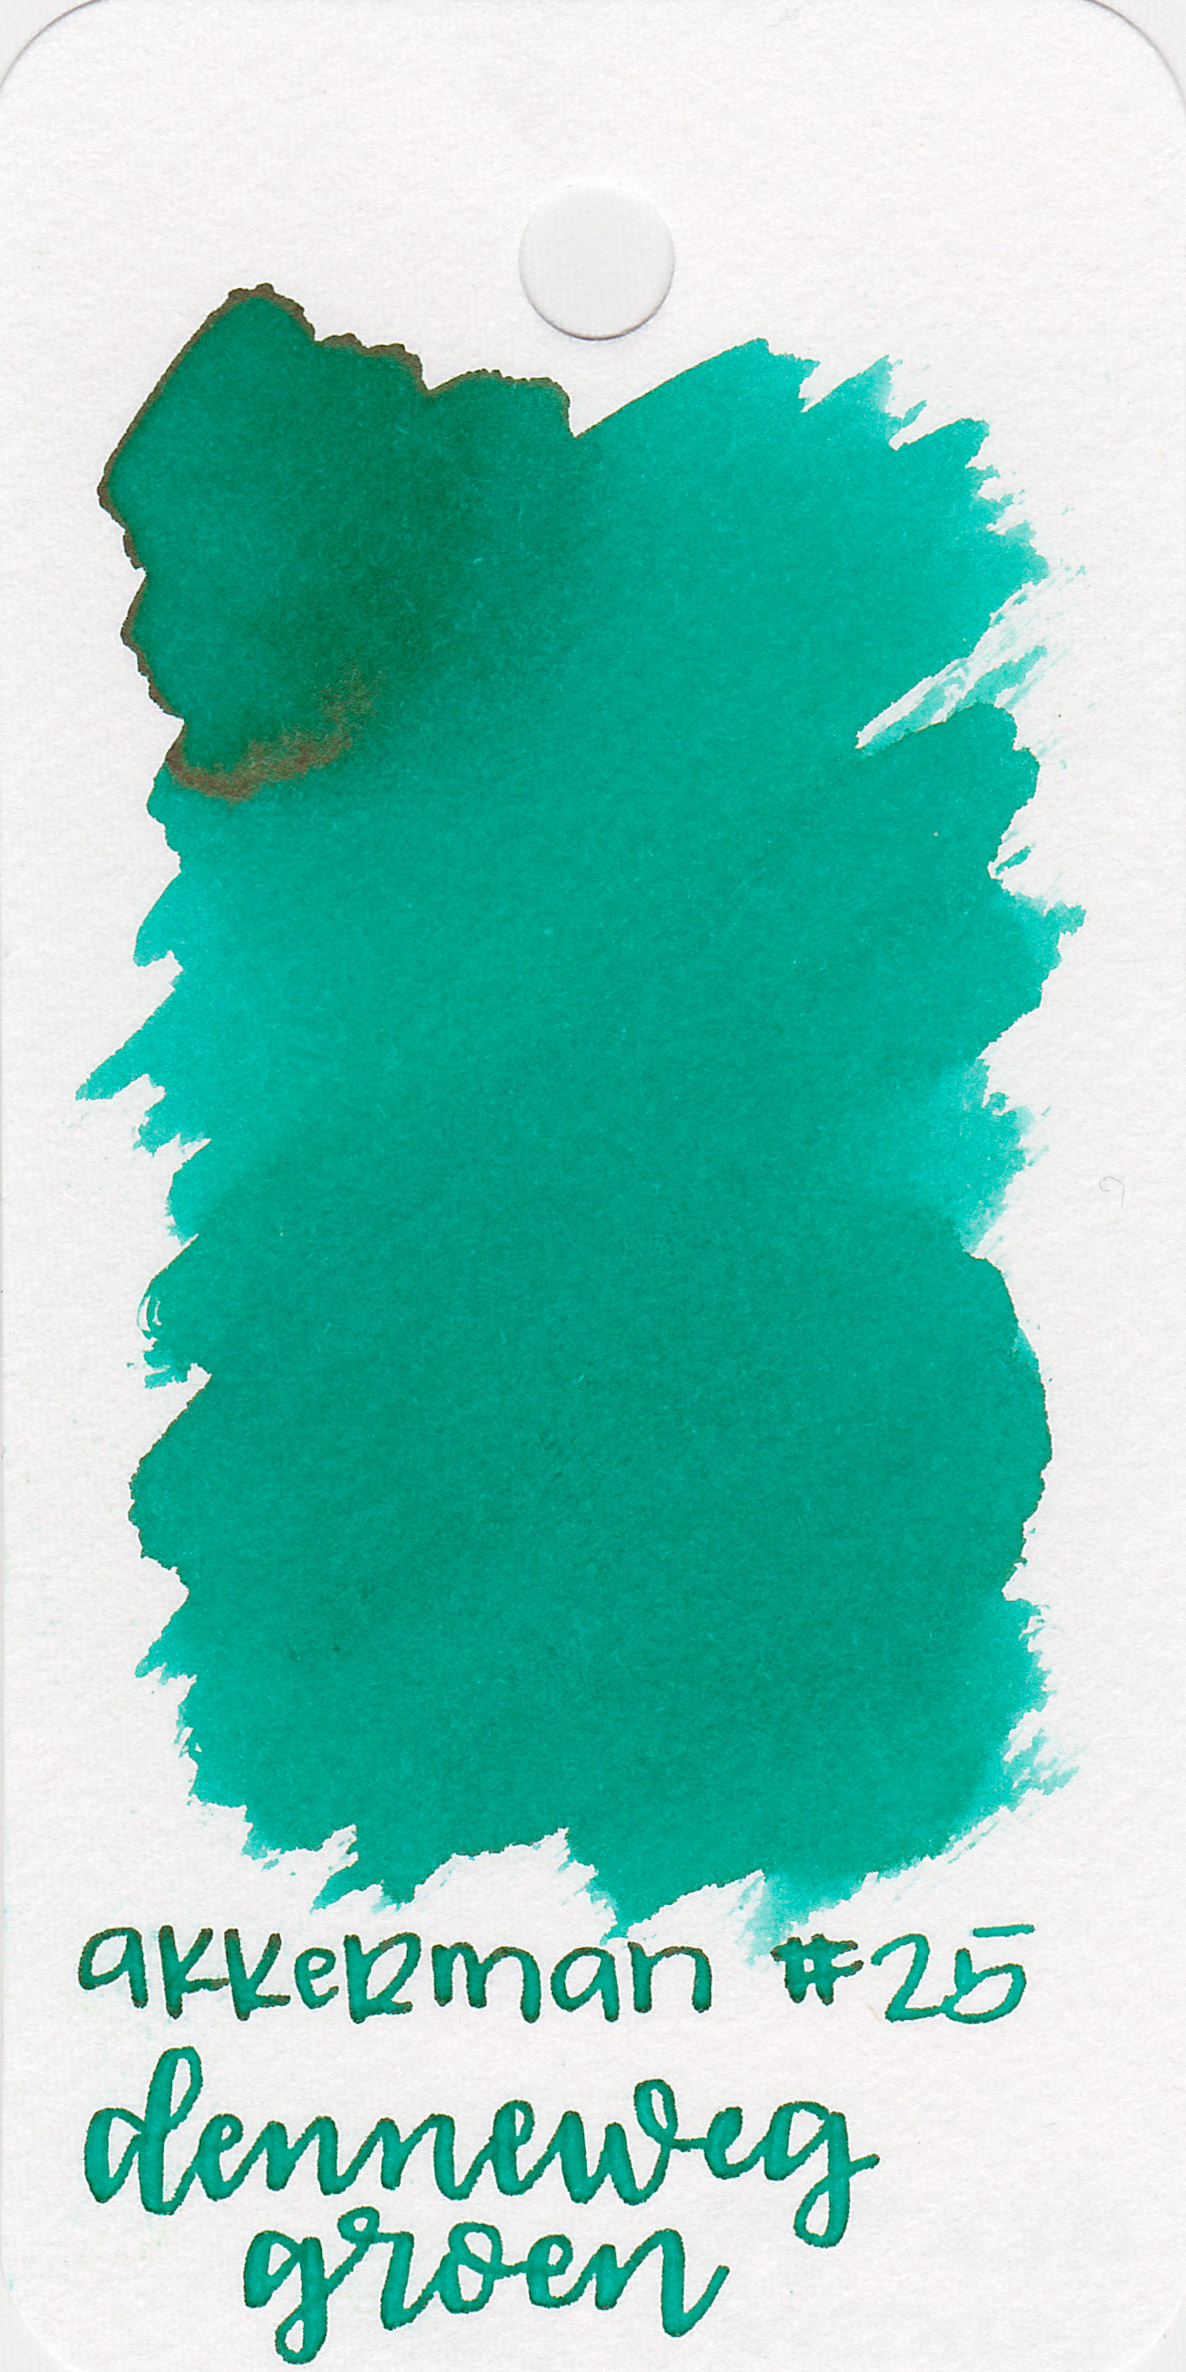 The color: - Denneweg Groen is a pretty teal-ish green. I think it's closer to teal than green.